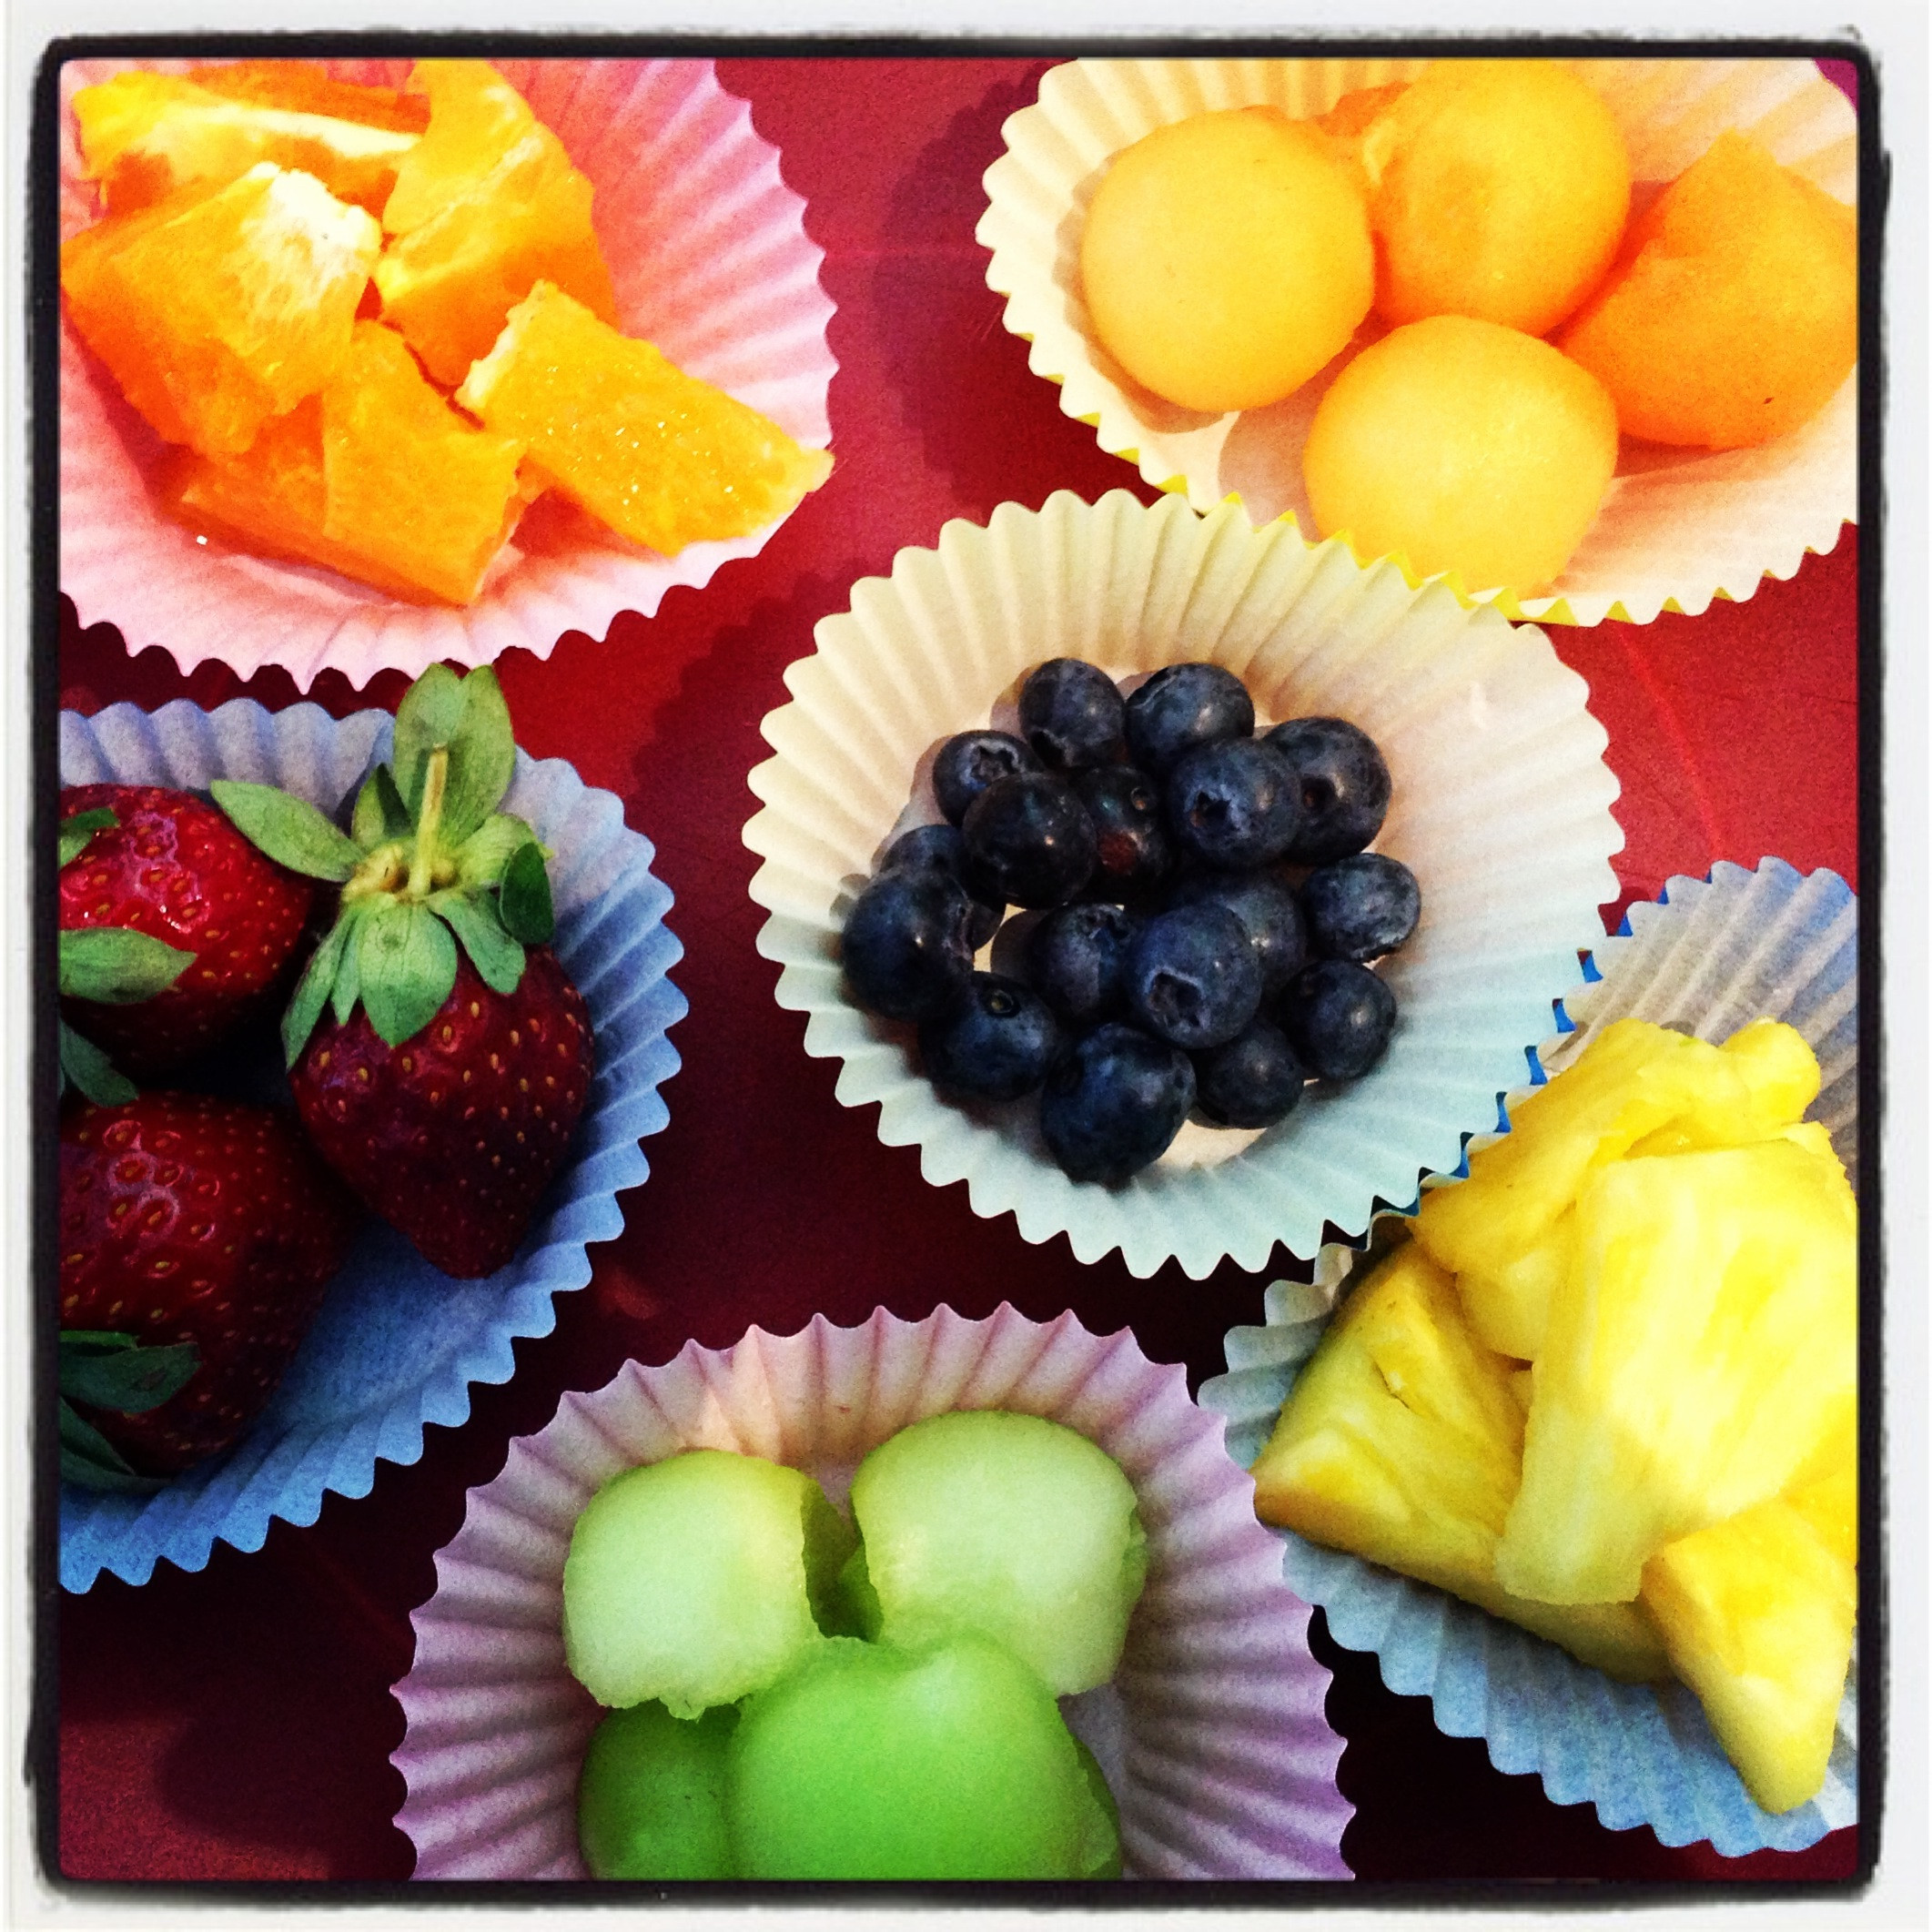 Party Food Ideas For Kids  Healthy party food ideas Healthy Kids